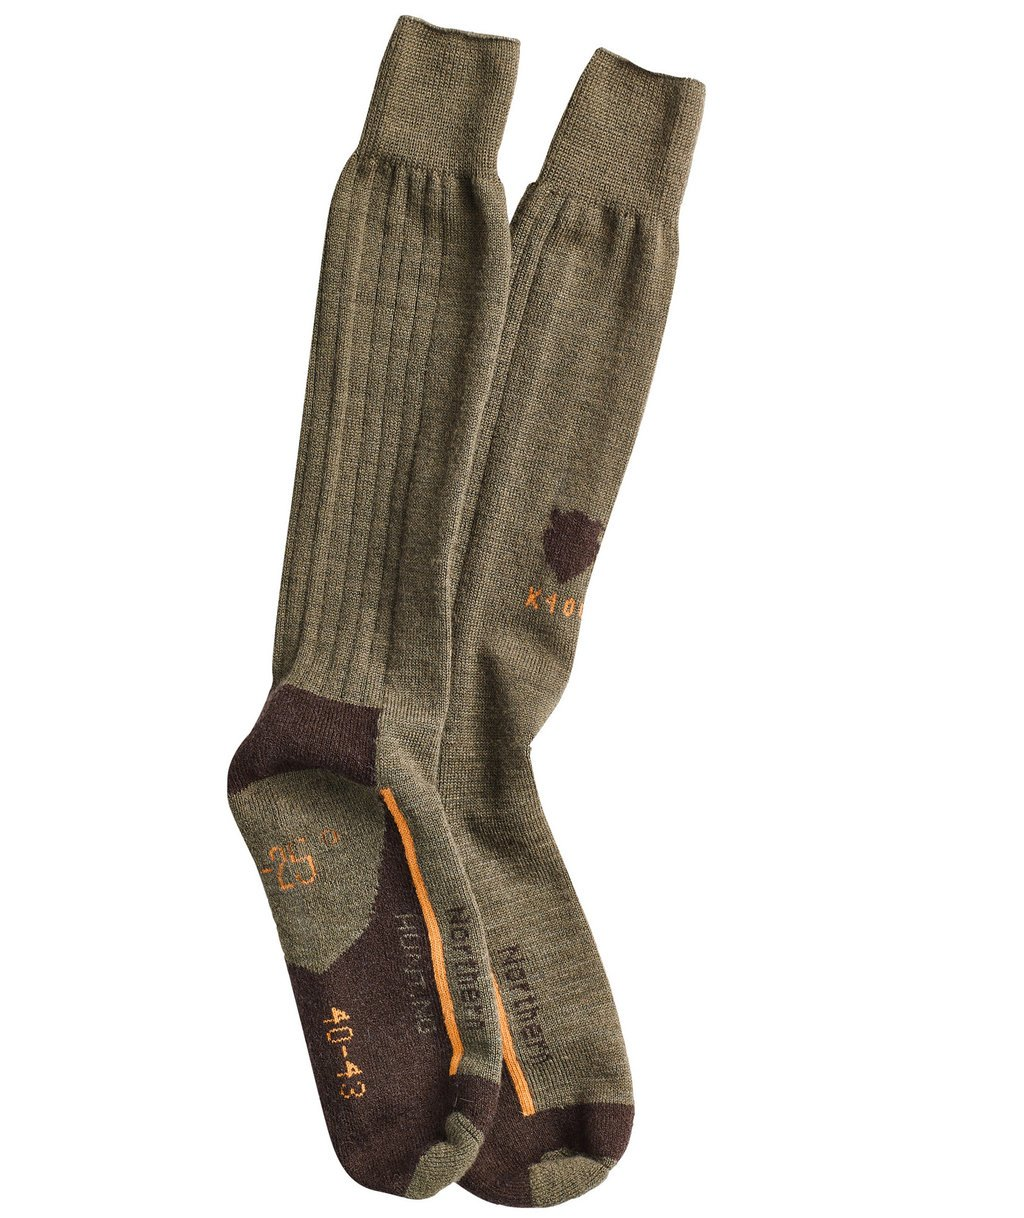 Northern Hunting K400 hunting socks, Green